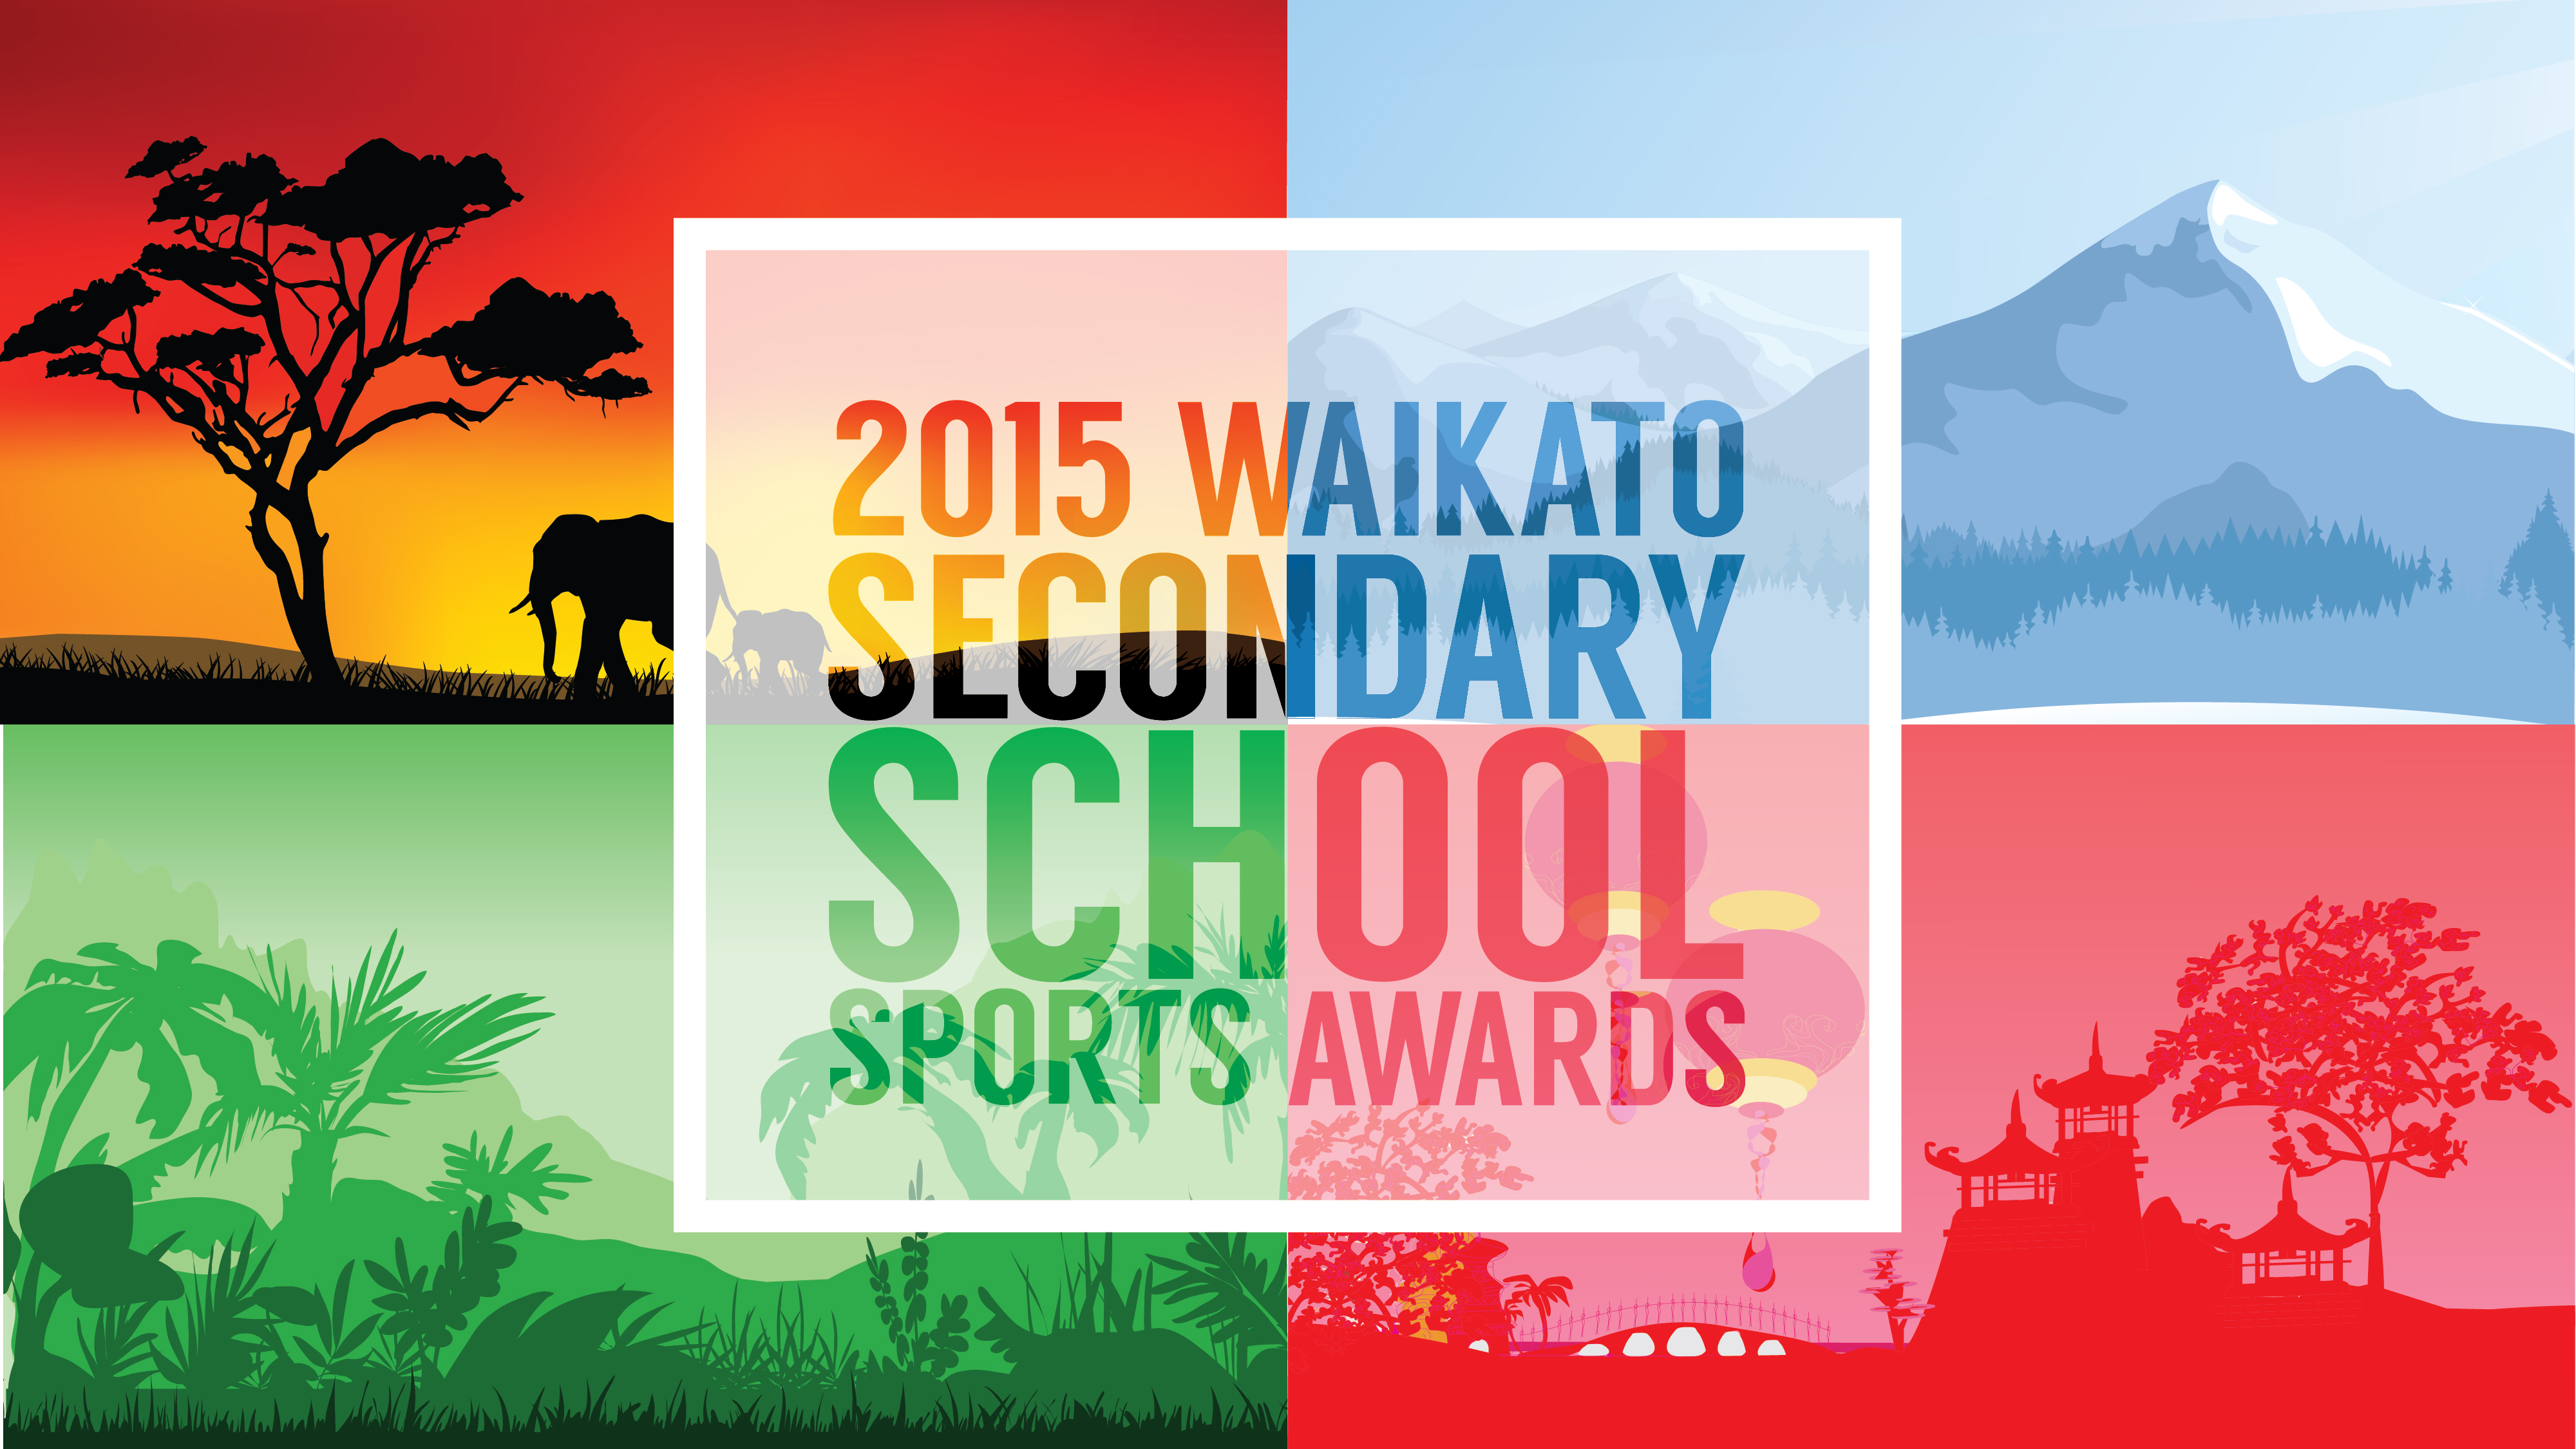 Waikato Secondary School Sports Awards Finalists Announced